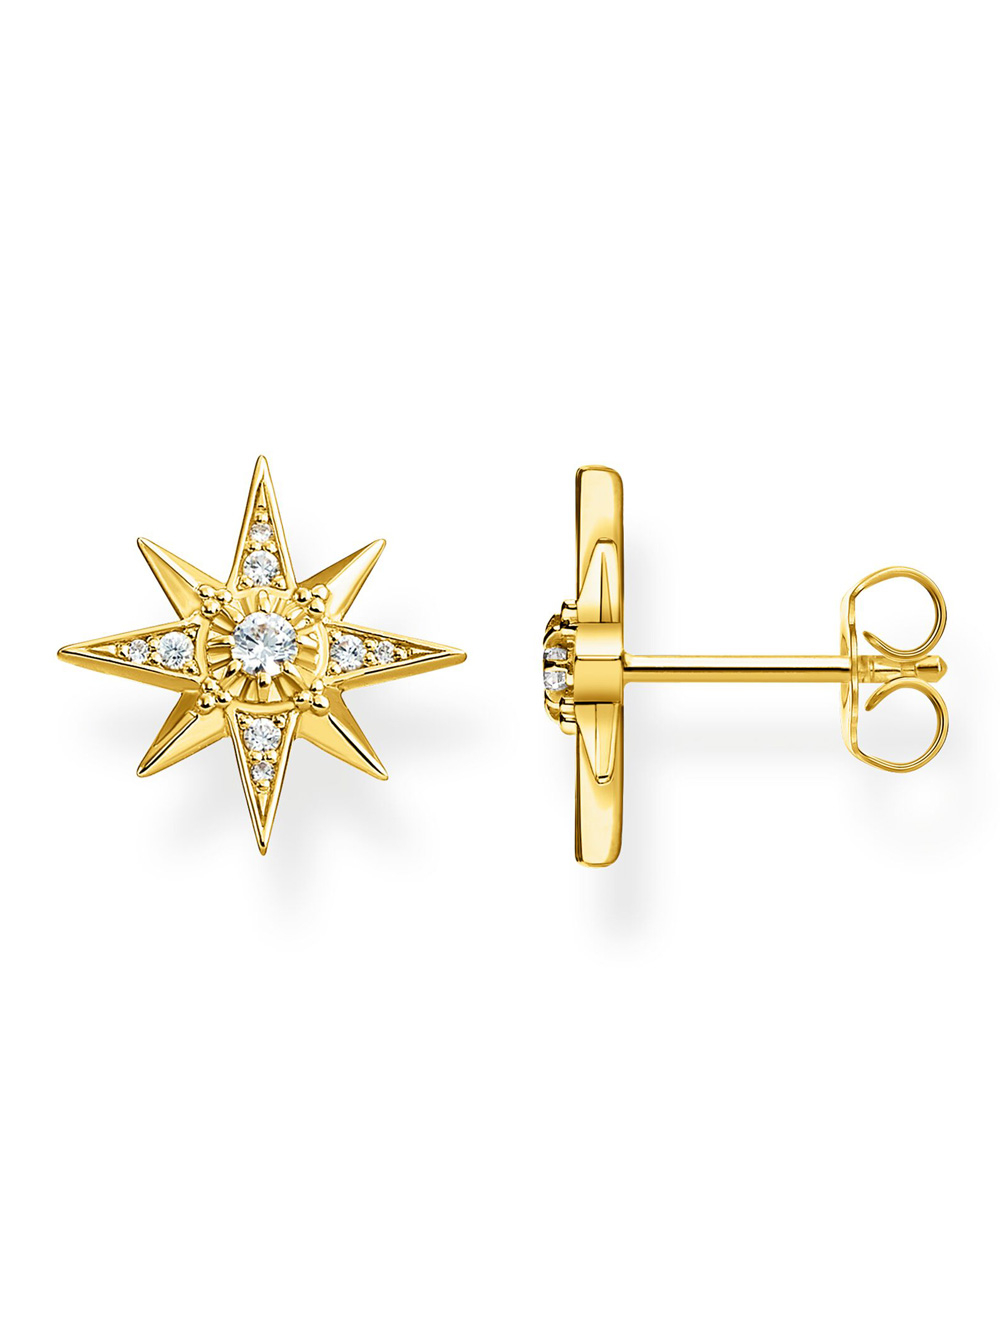 Thomas Sabo Ohrring Glam & Soul H2081-414-14 Stern Gold | Schmuck > Ohrschmuck & Ohrringe > Ohrstecker | Gold | Thomas Sabo